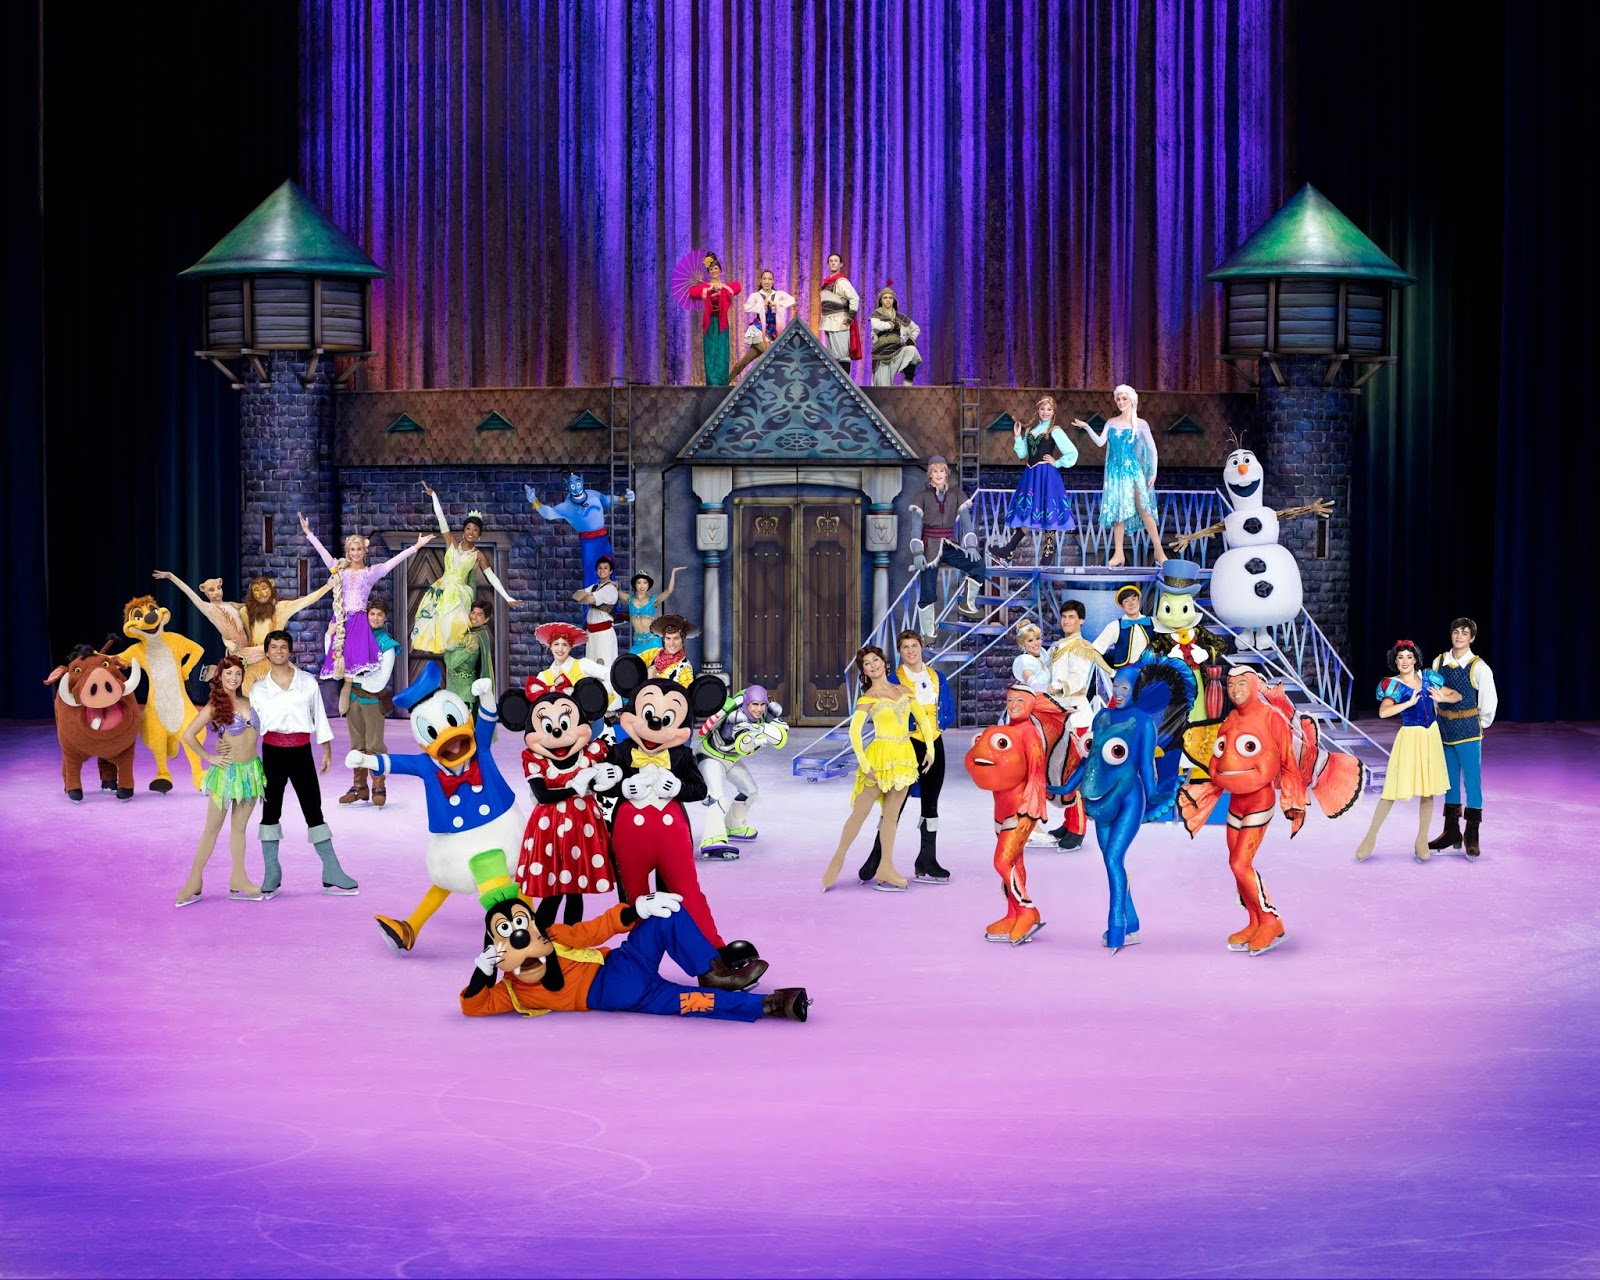 Disney On Ice Newcastle 2019 - How To Buy Pre-Sale Tickets